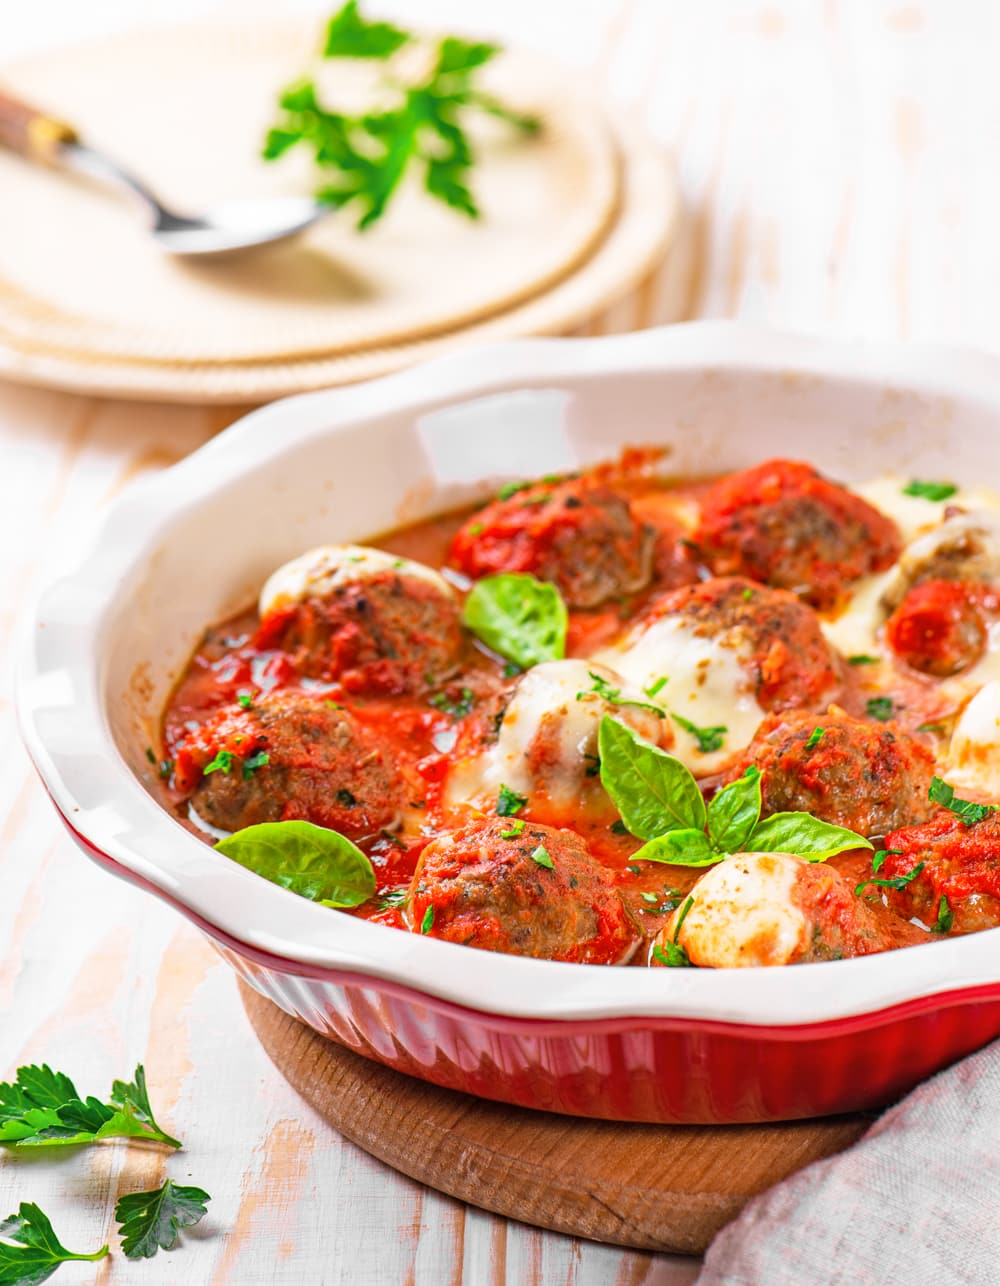 A ceramic bowl filled with low carb meatballs and tomato sauce.